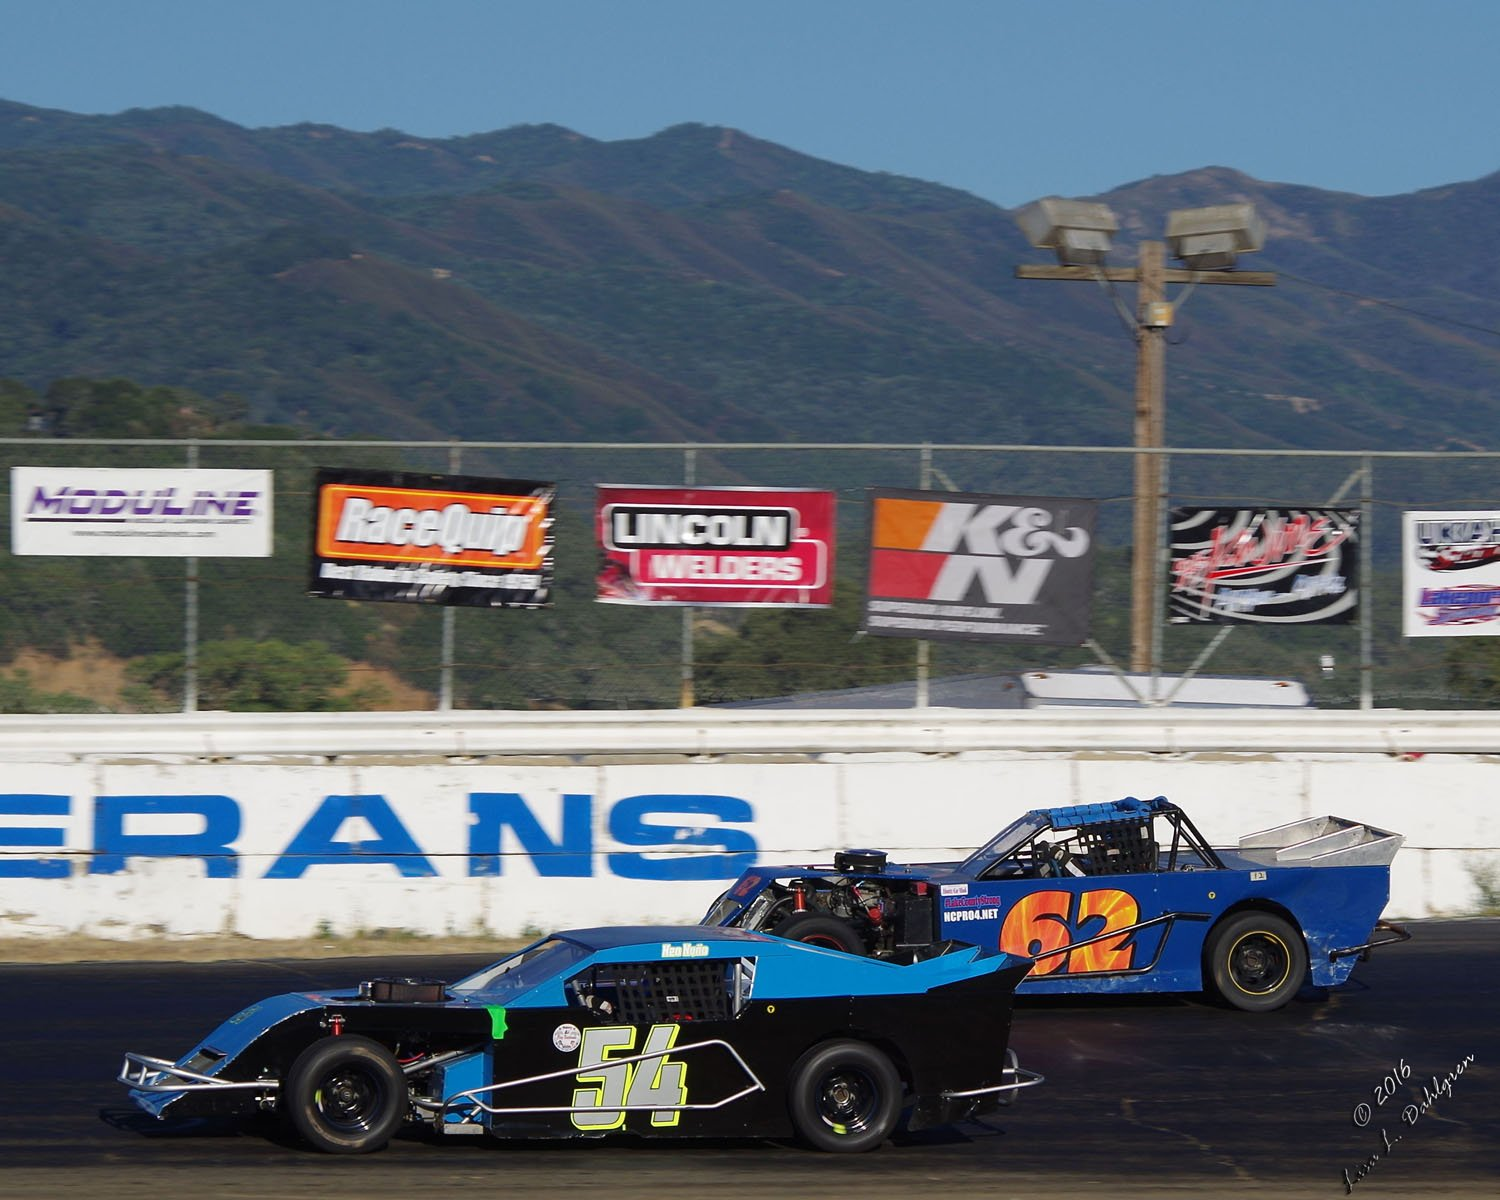 Pro 4 Modifieds 54 Neo Nuno and 62 Jim Sturges